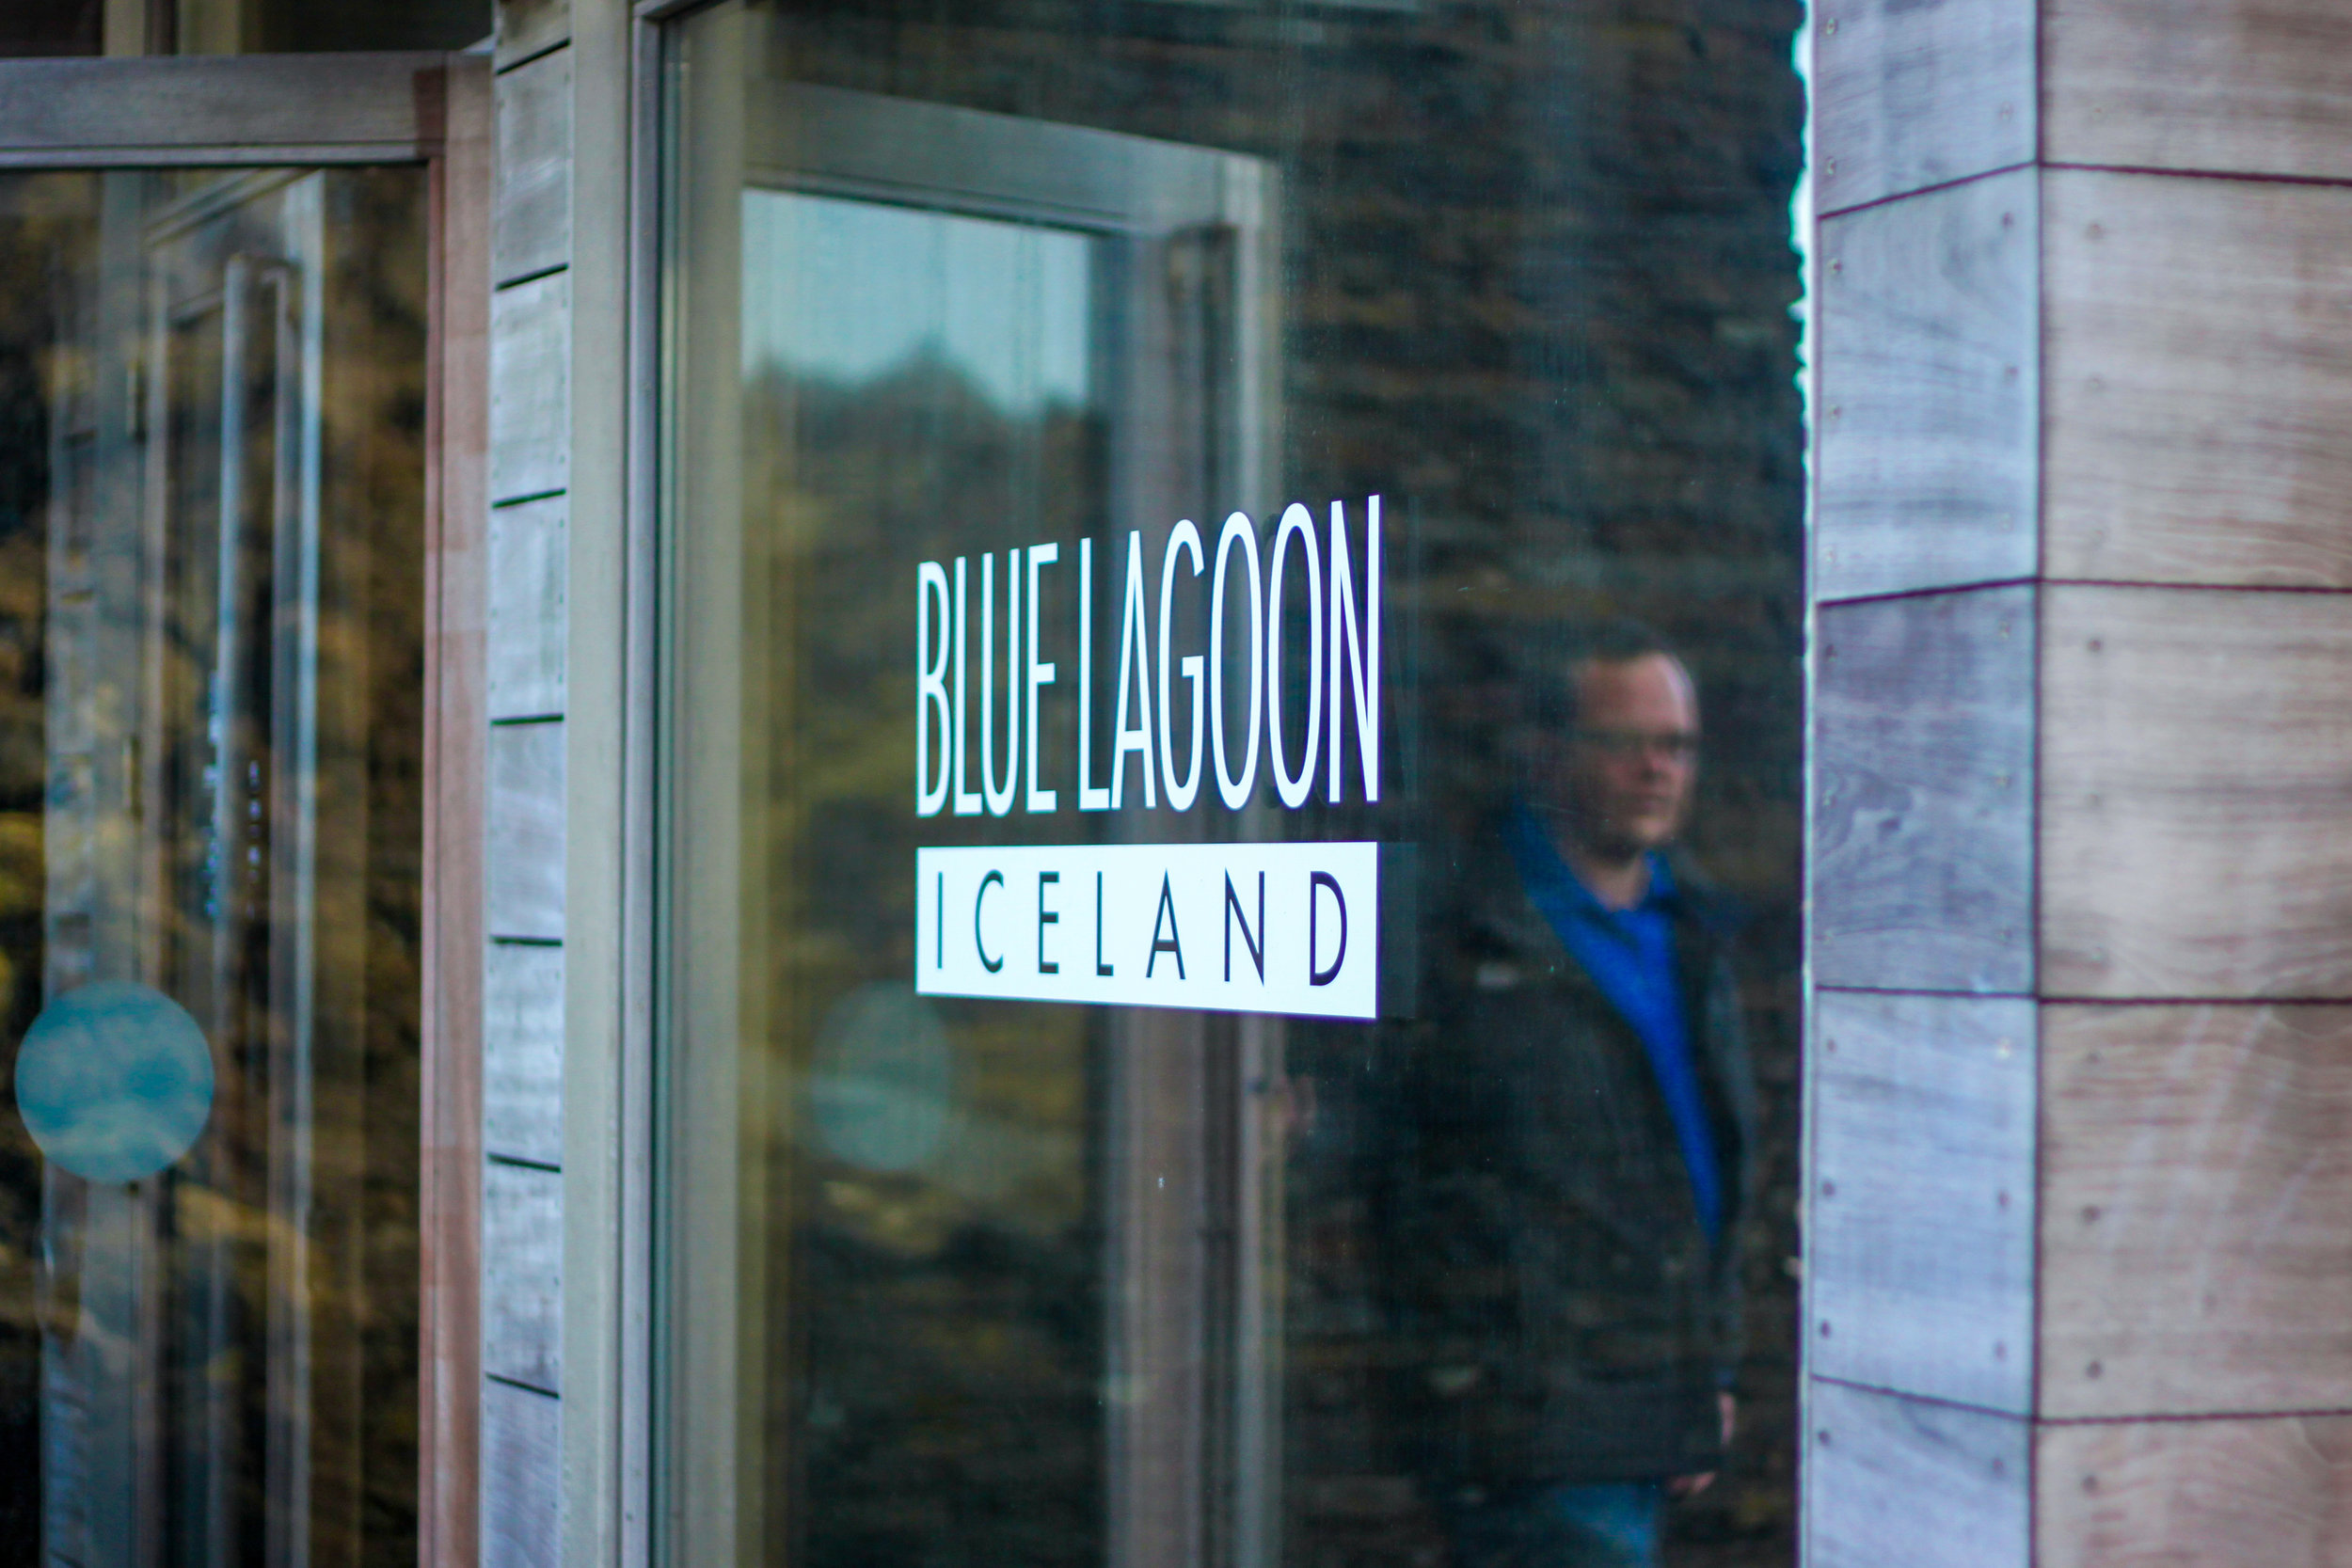 Guide to Blue Lagoon